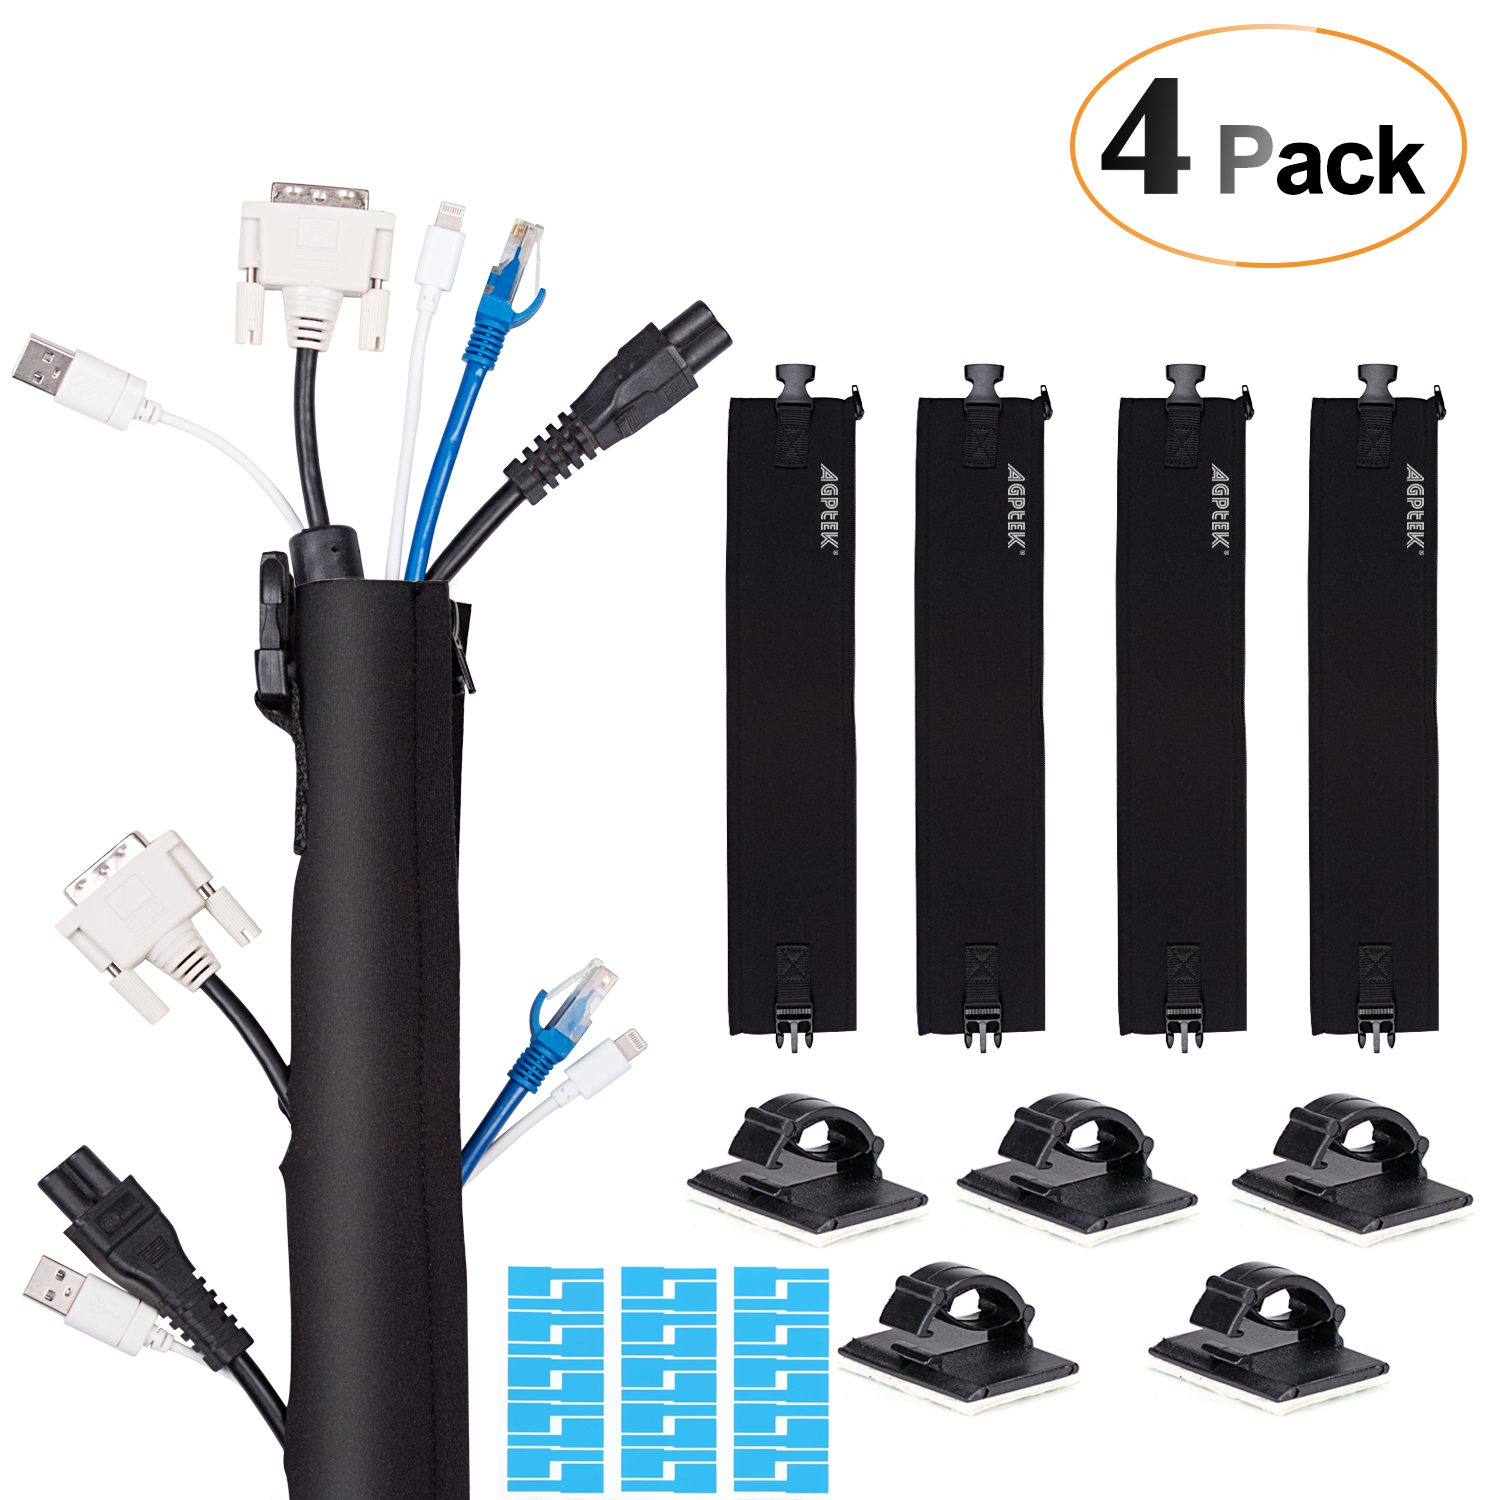 AGPTEK Neoprene Zip-up Cable Sleeves & Cable Clips (Upgraded Version), Cable Management Sleeves with 5 Cable Clips, Neoprene Cable Wrap for TV / Computer / Home Entertainment Set of 4